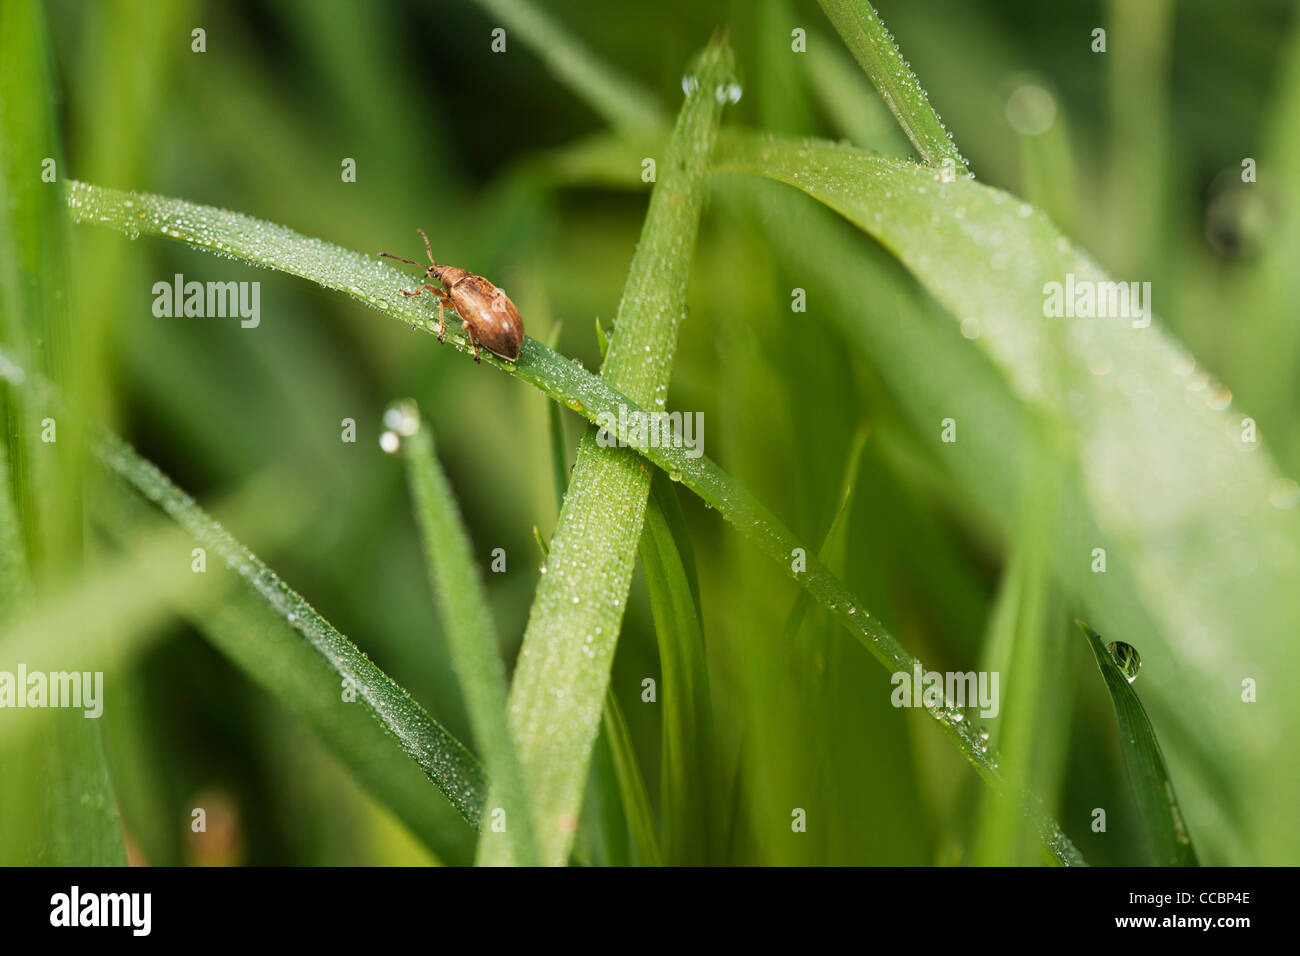 Weevil on dew-covered grass - Stock Image